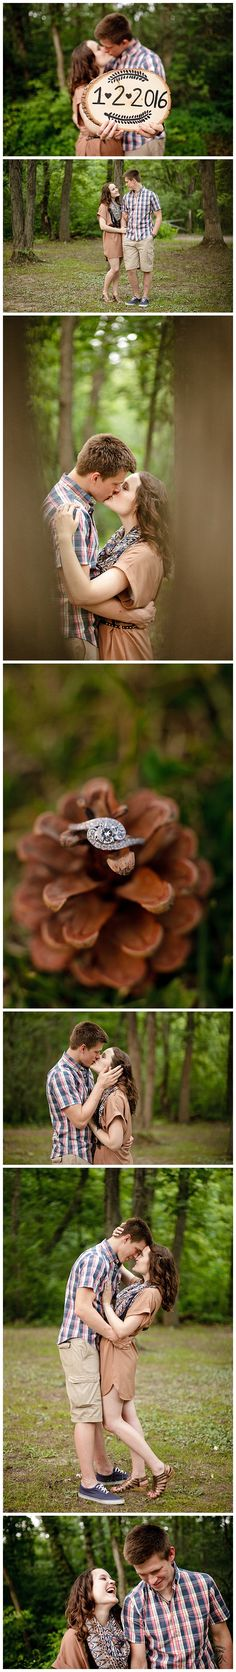 Romantic Forest Engagement Session Pine cone wedding ring save the date woodsy engagement state park